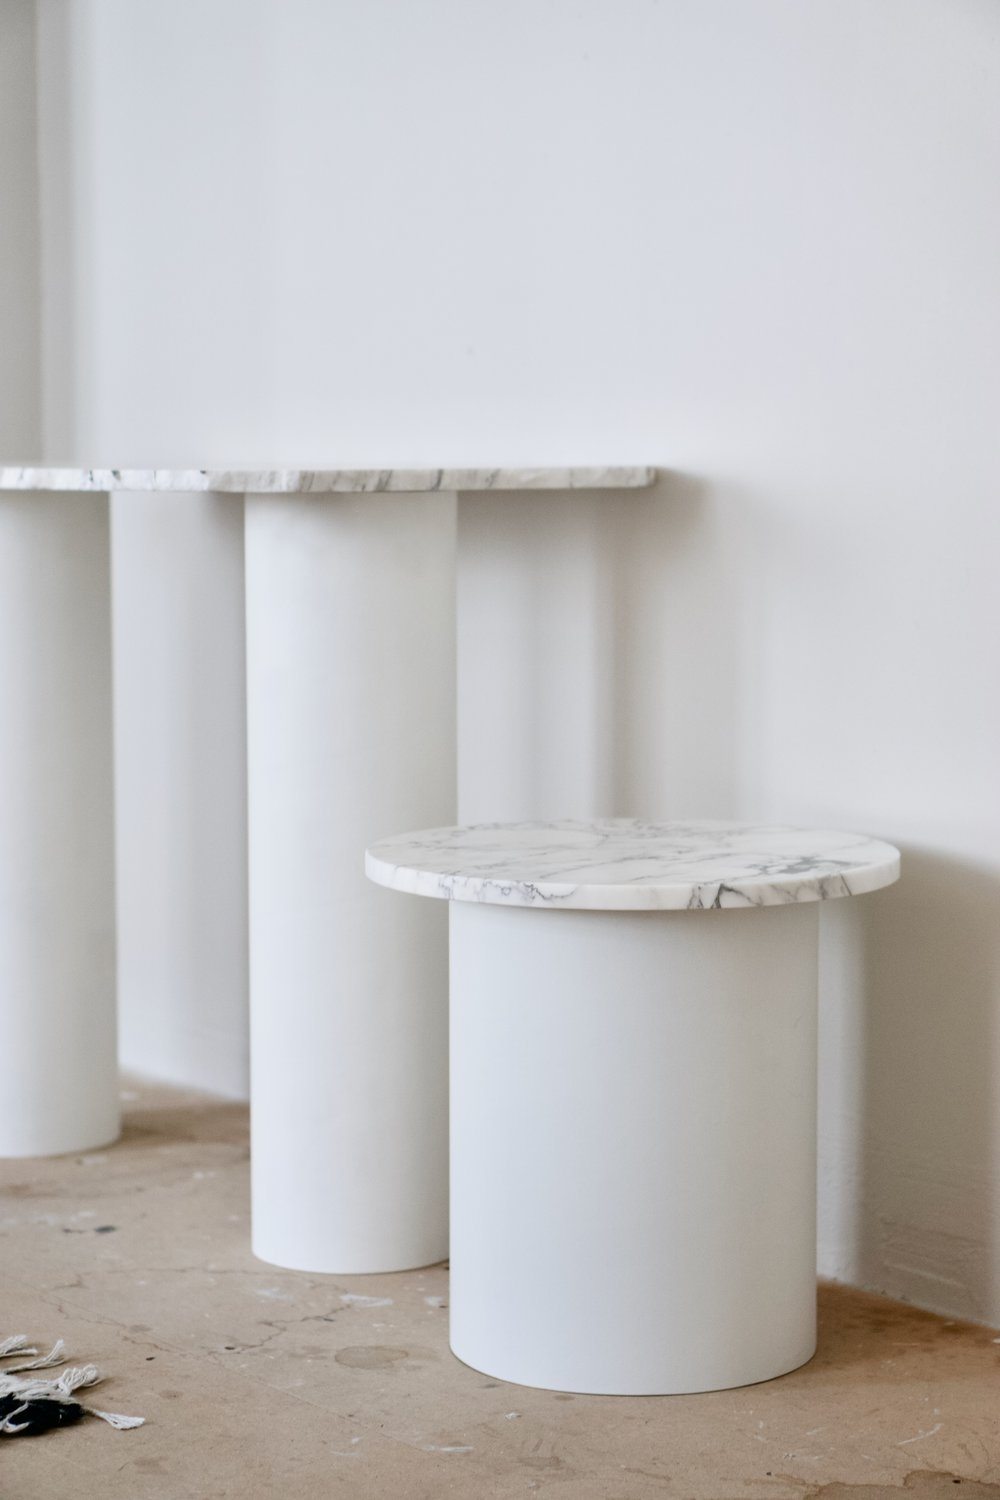 Circular table legs available in two dimensions, D 20 and D 30.